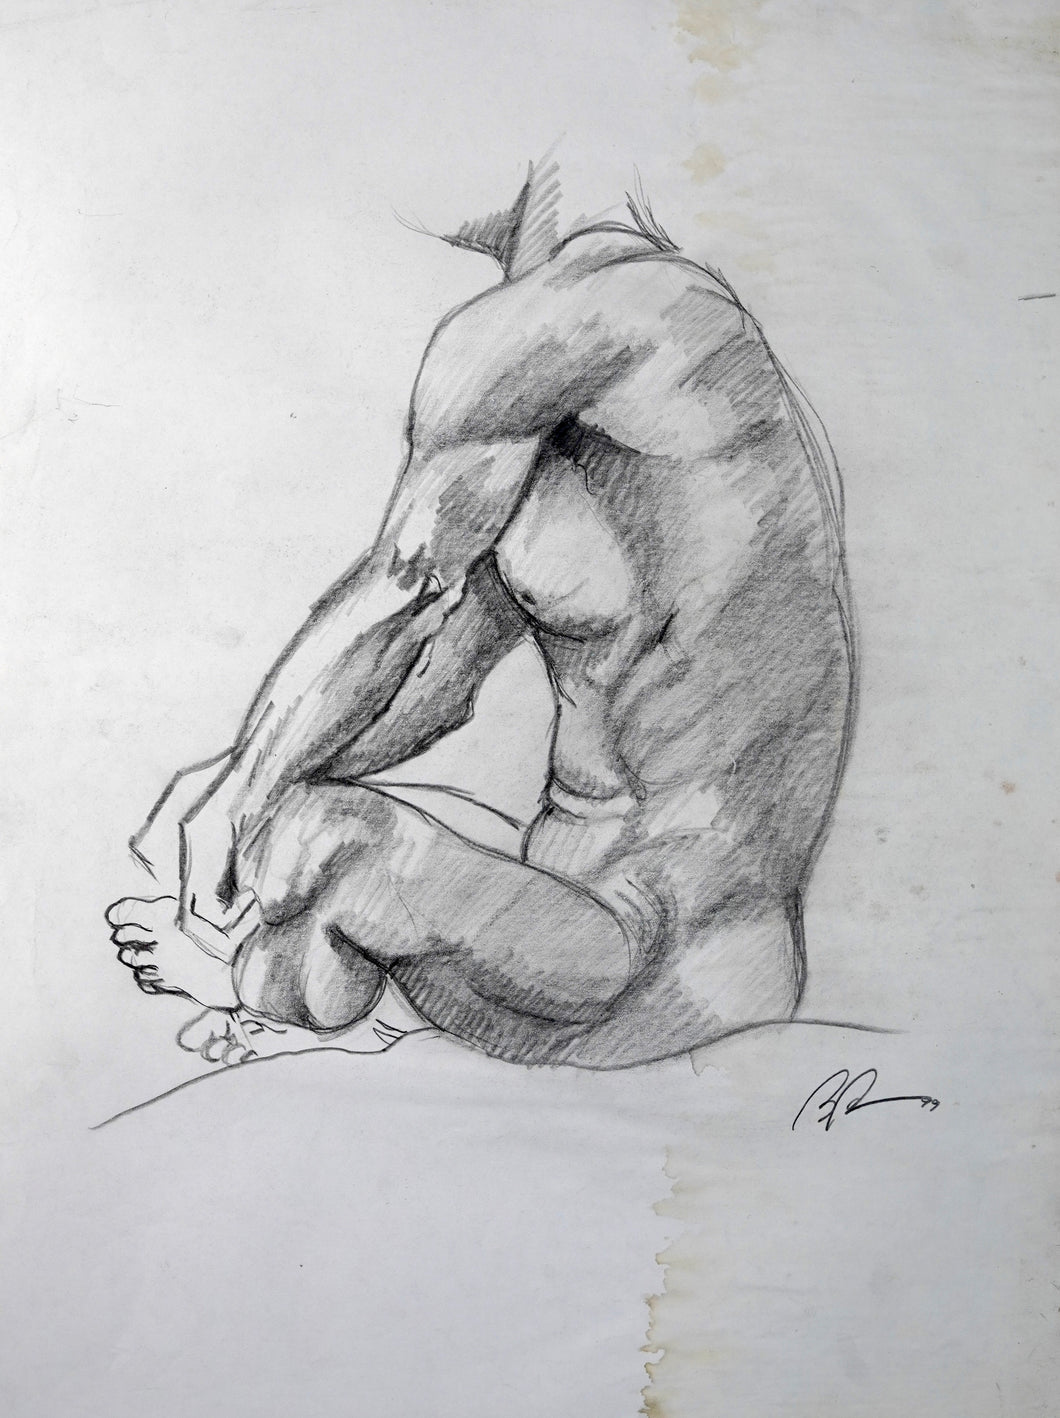 316 - Seated Man, 1999